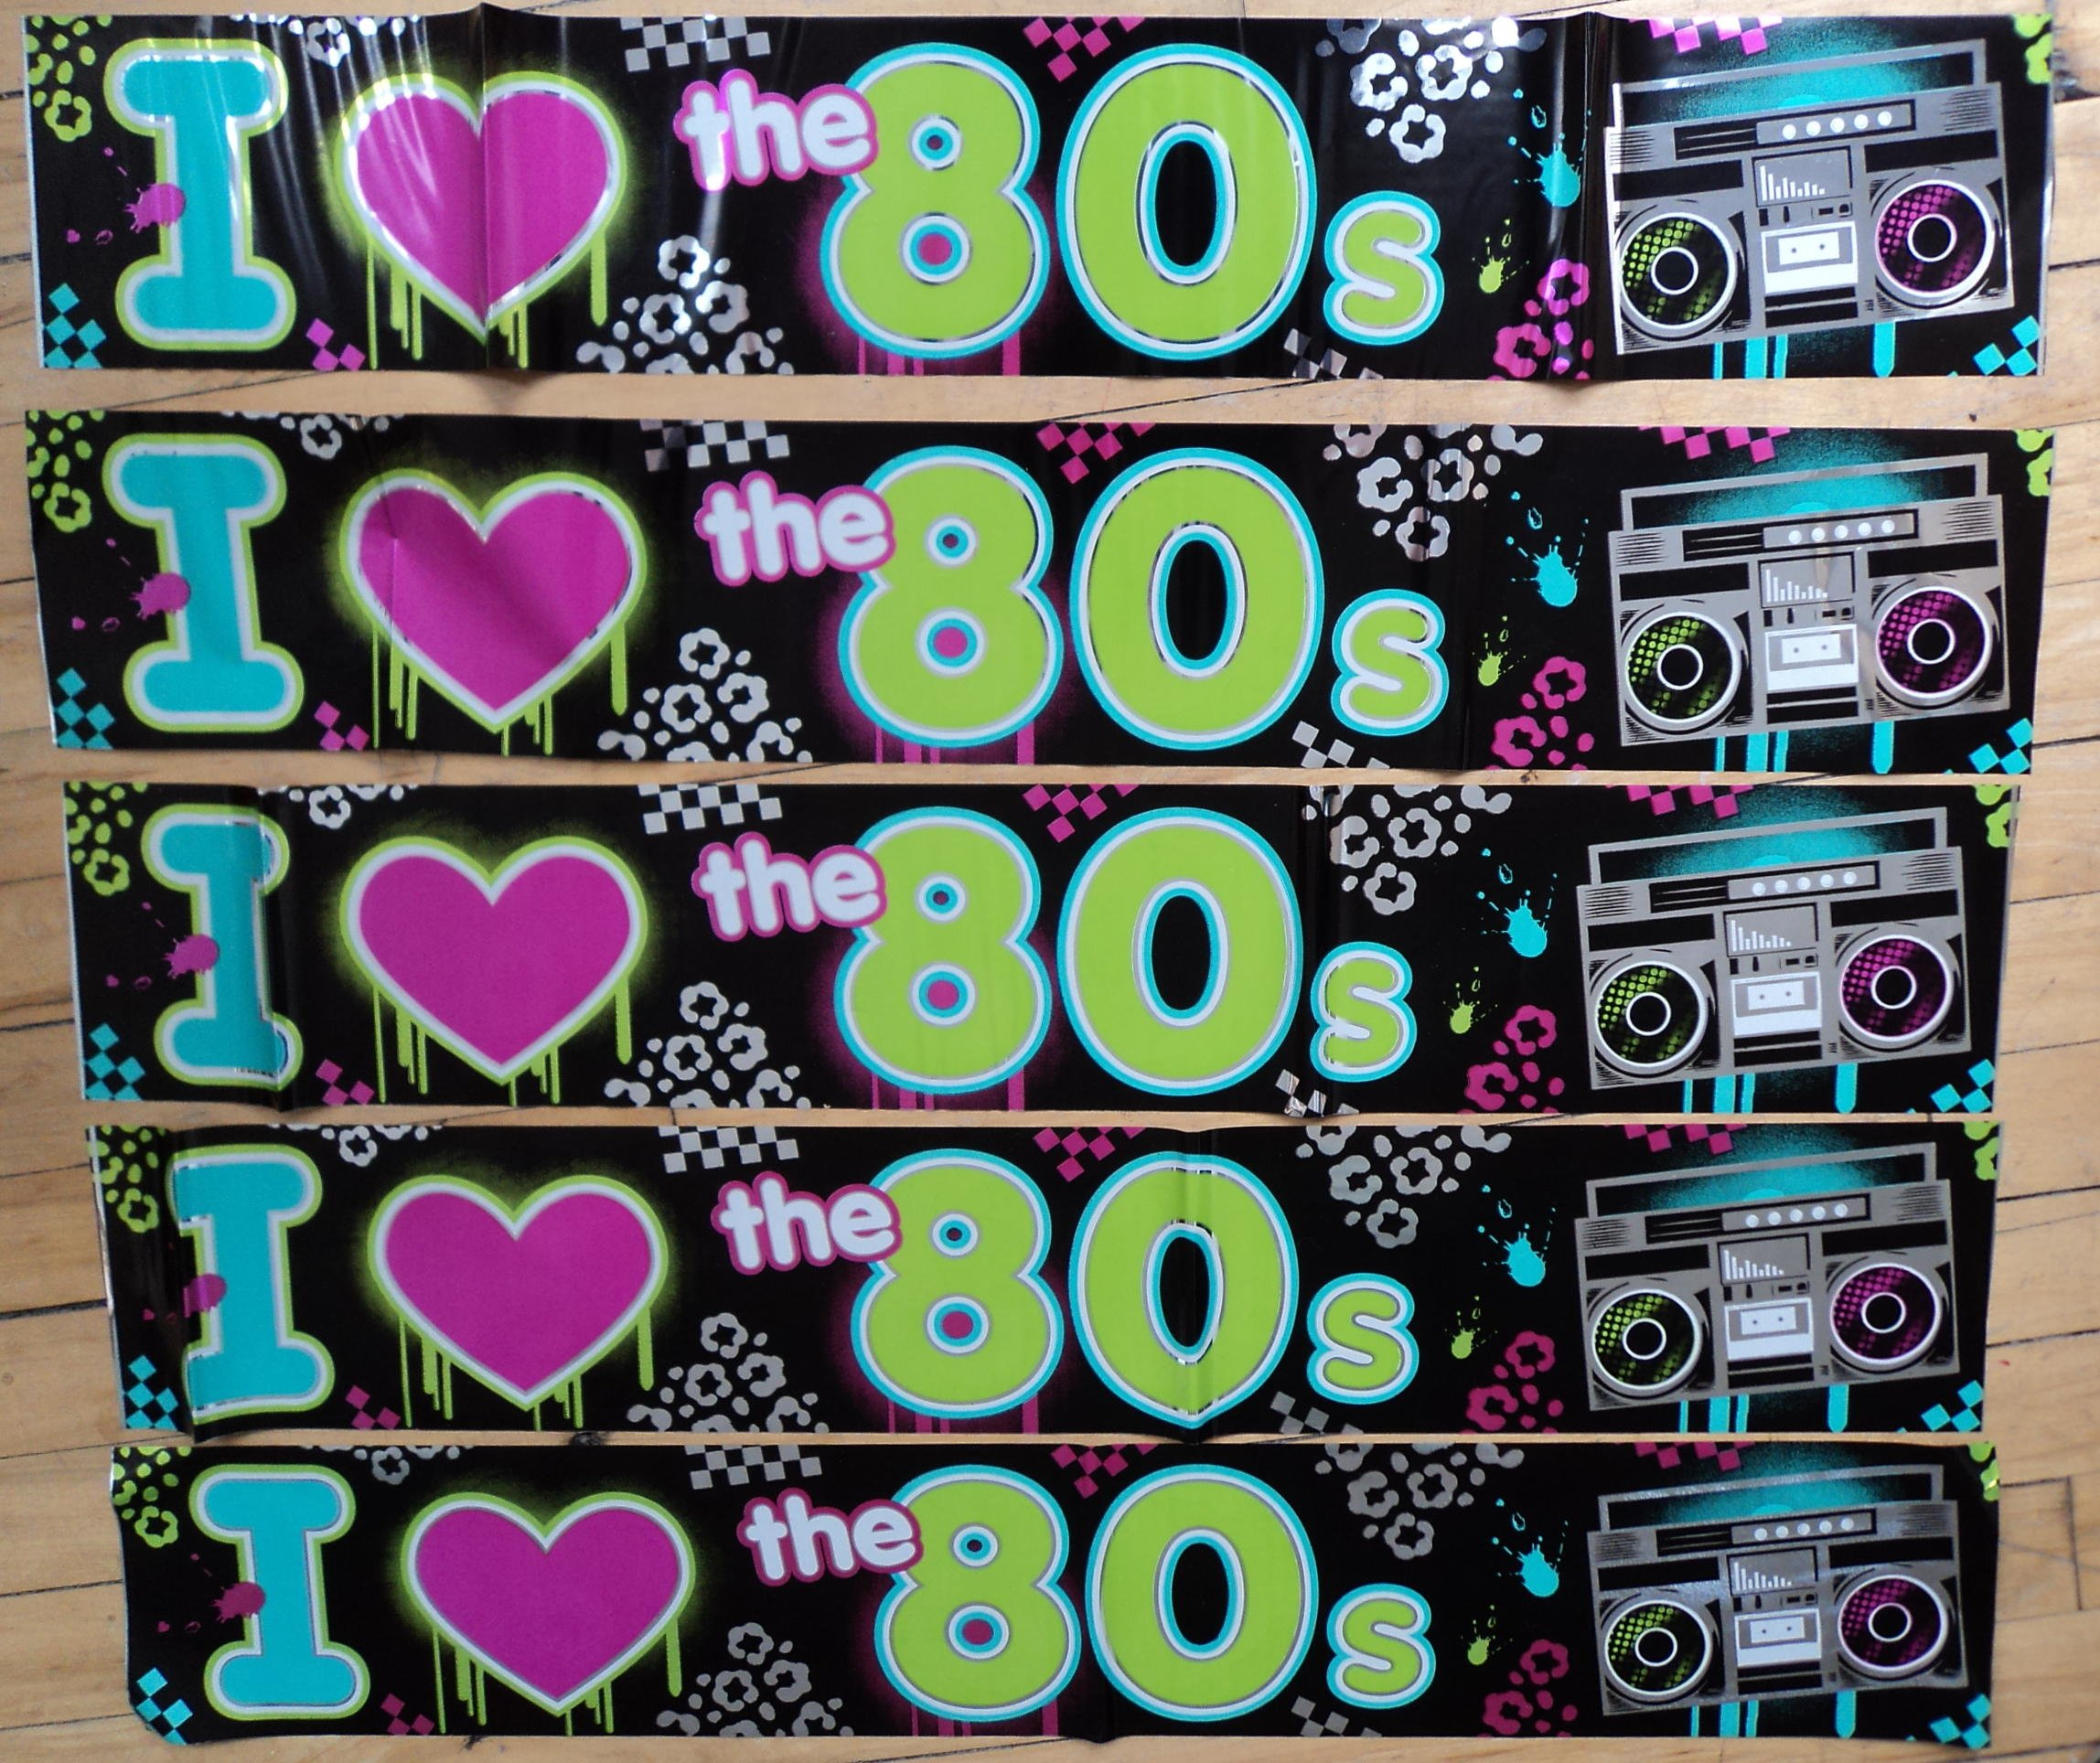 80s Party Decoration - I Love 80s Banner - 7.6 metres long! by 80s Material Girl